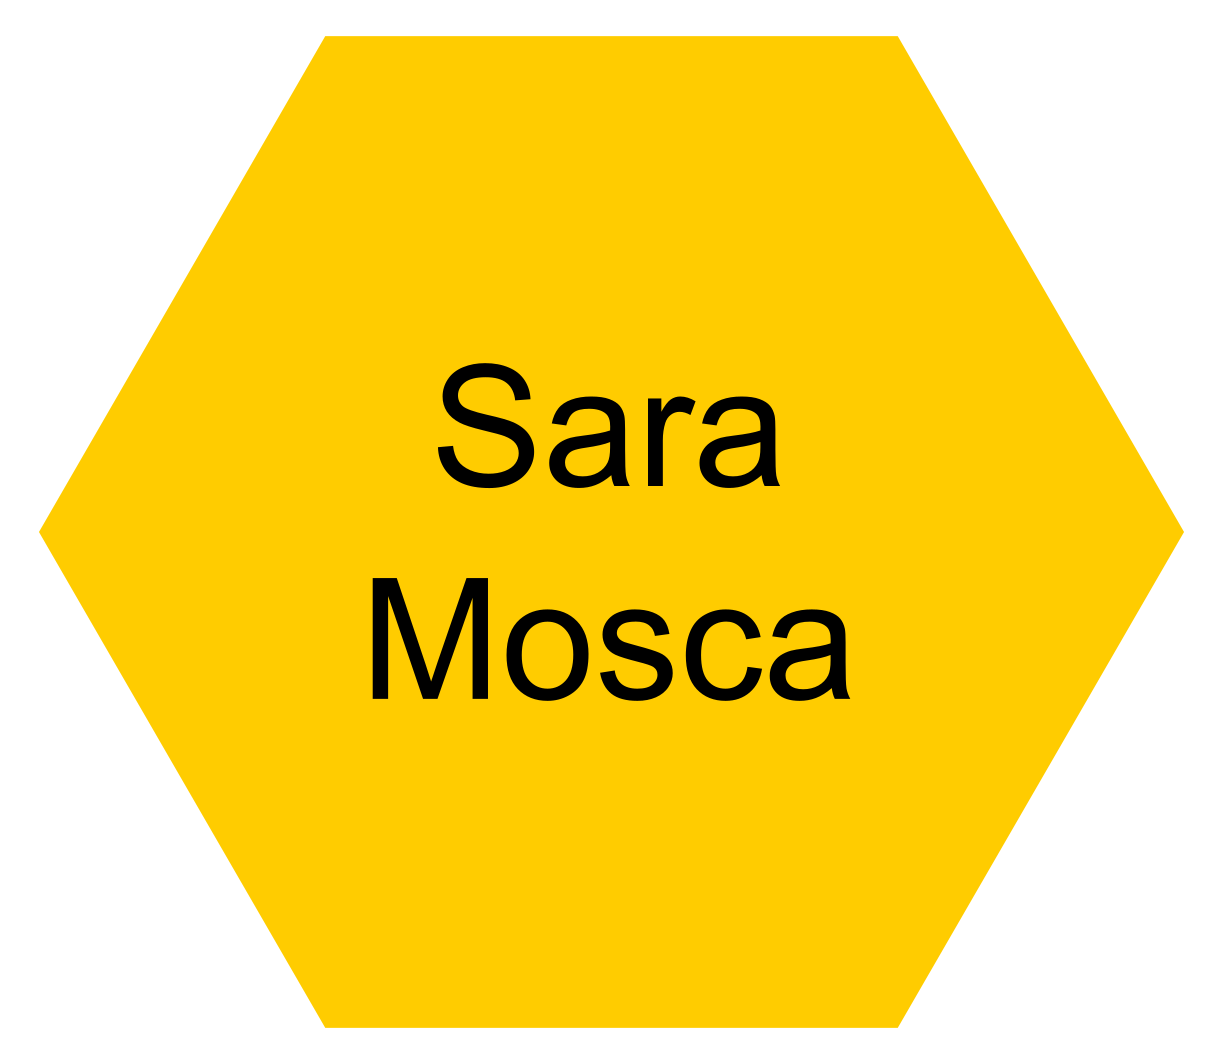 Dr. Sara Mosca (Rutherford Appleton Laboratory: Post-Doctoral Researcher) - Click this icon to reveal their contact details.